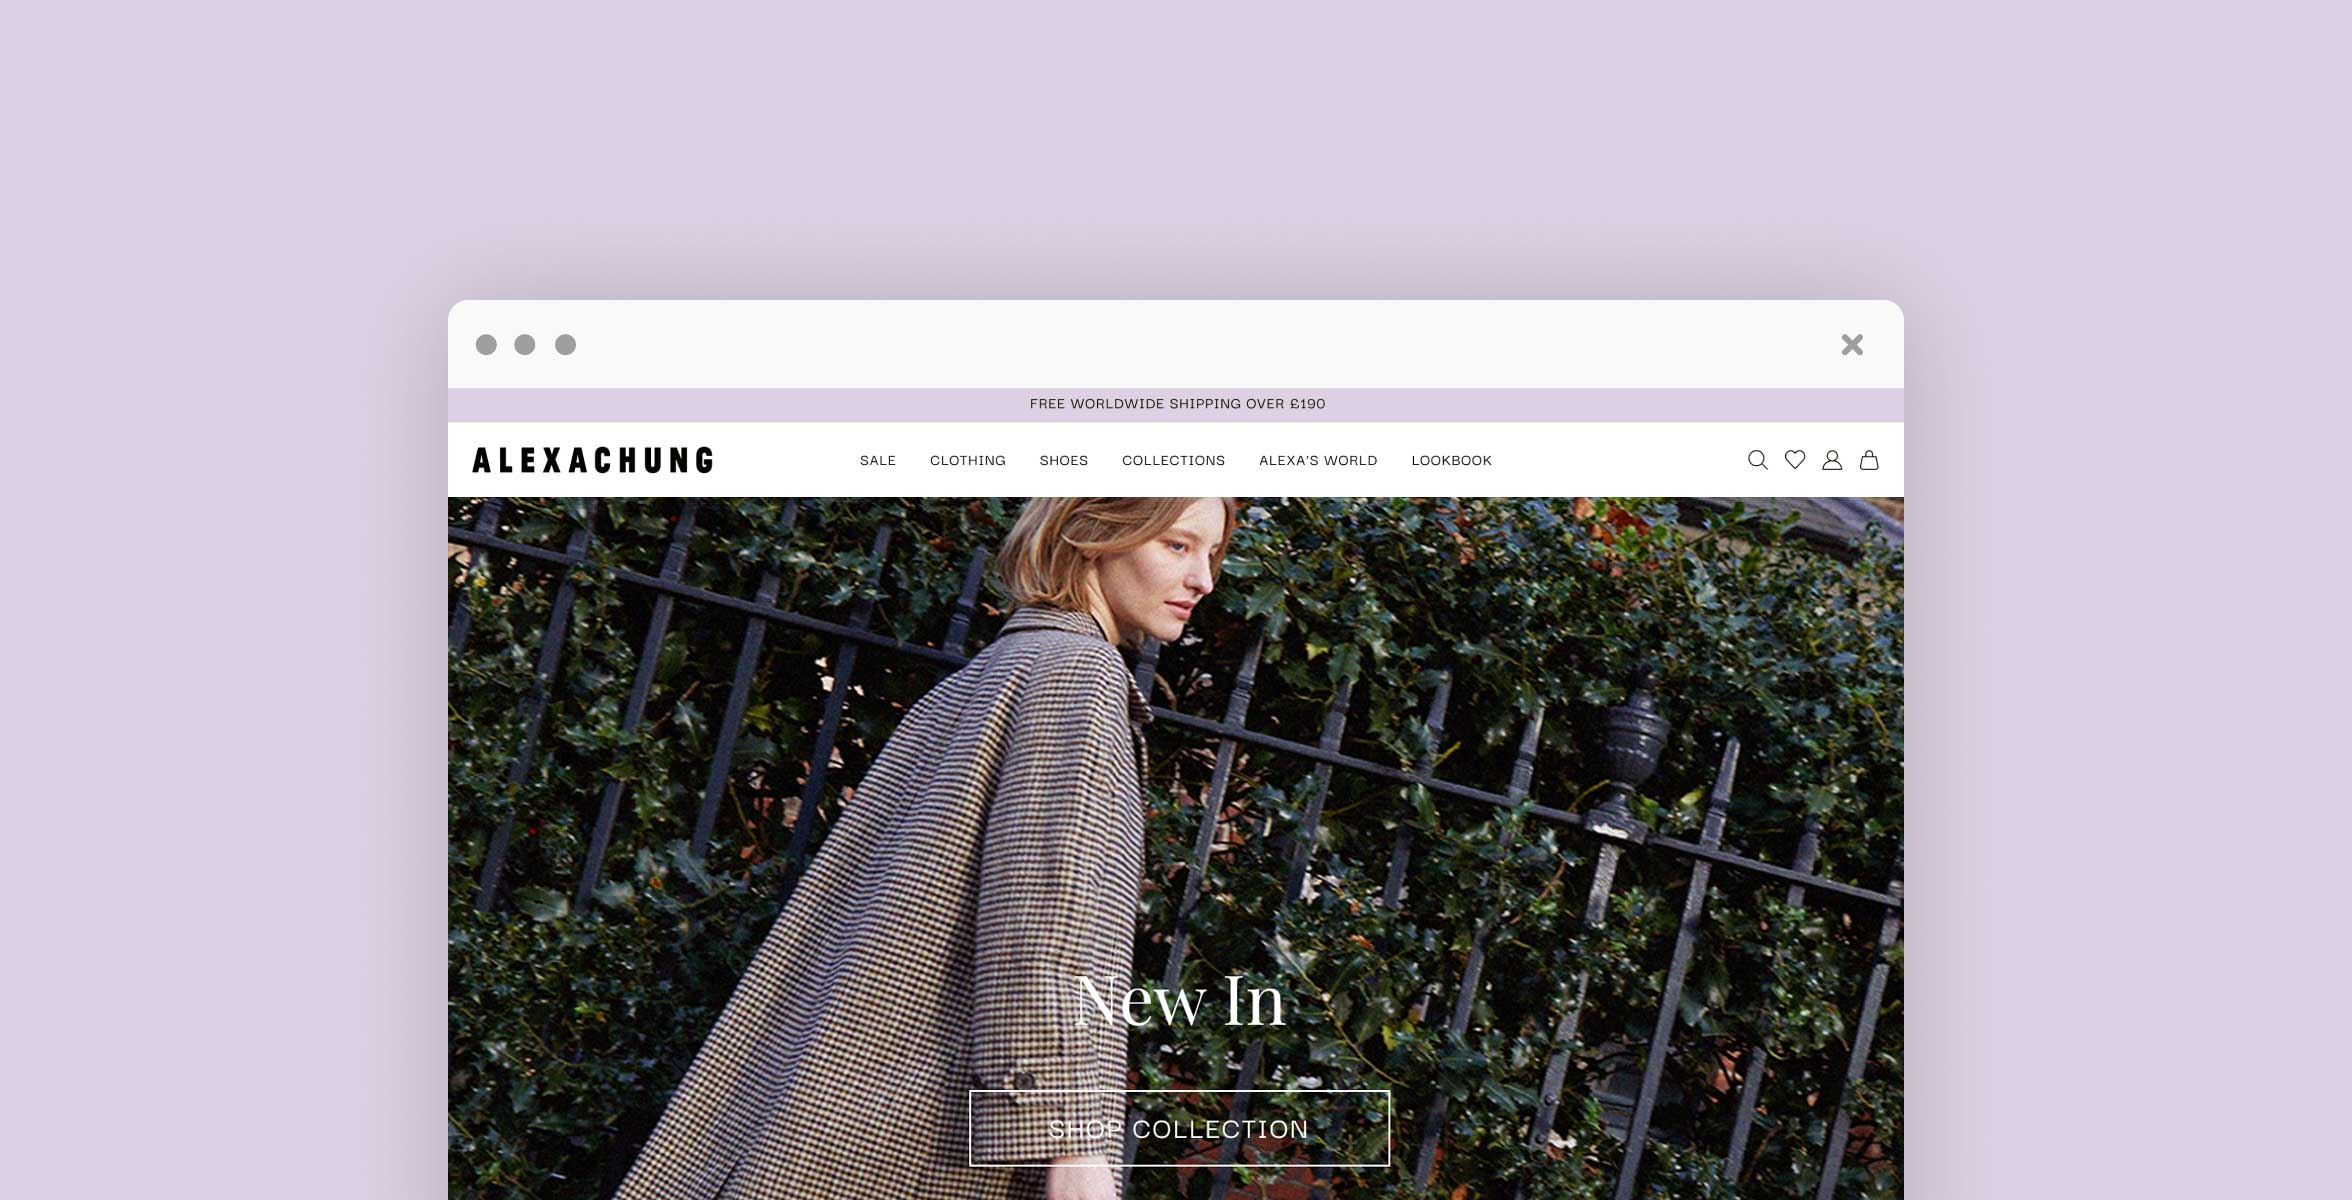 Image of the Alexa Chung website homepage